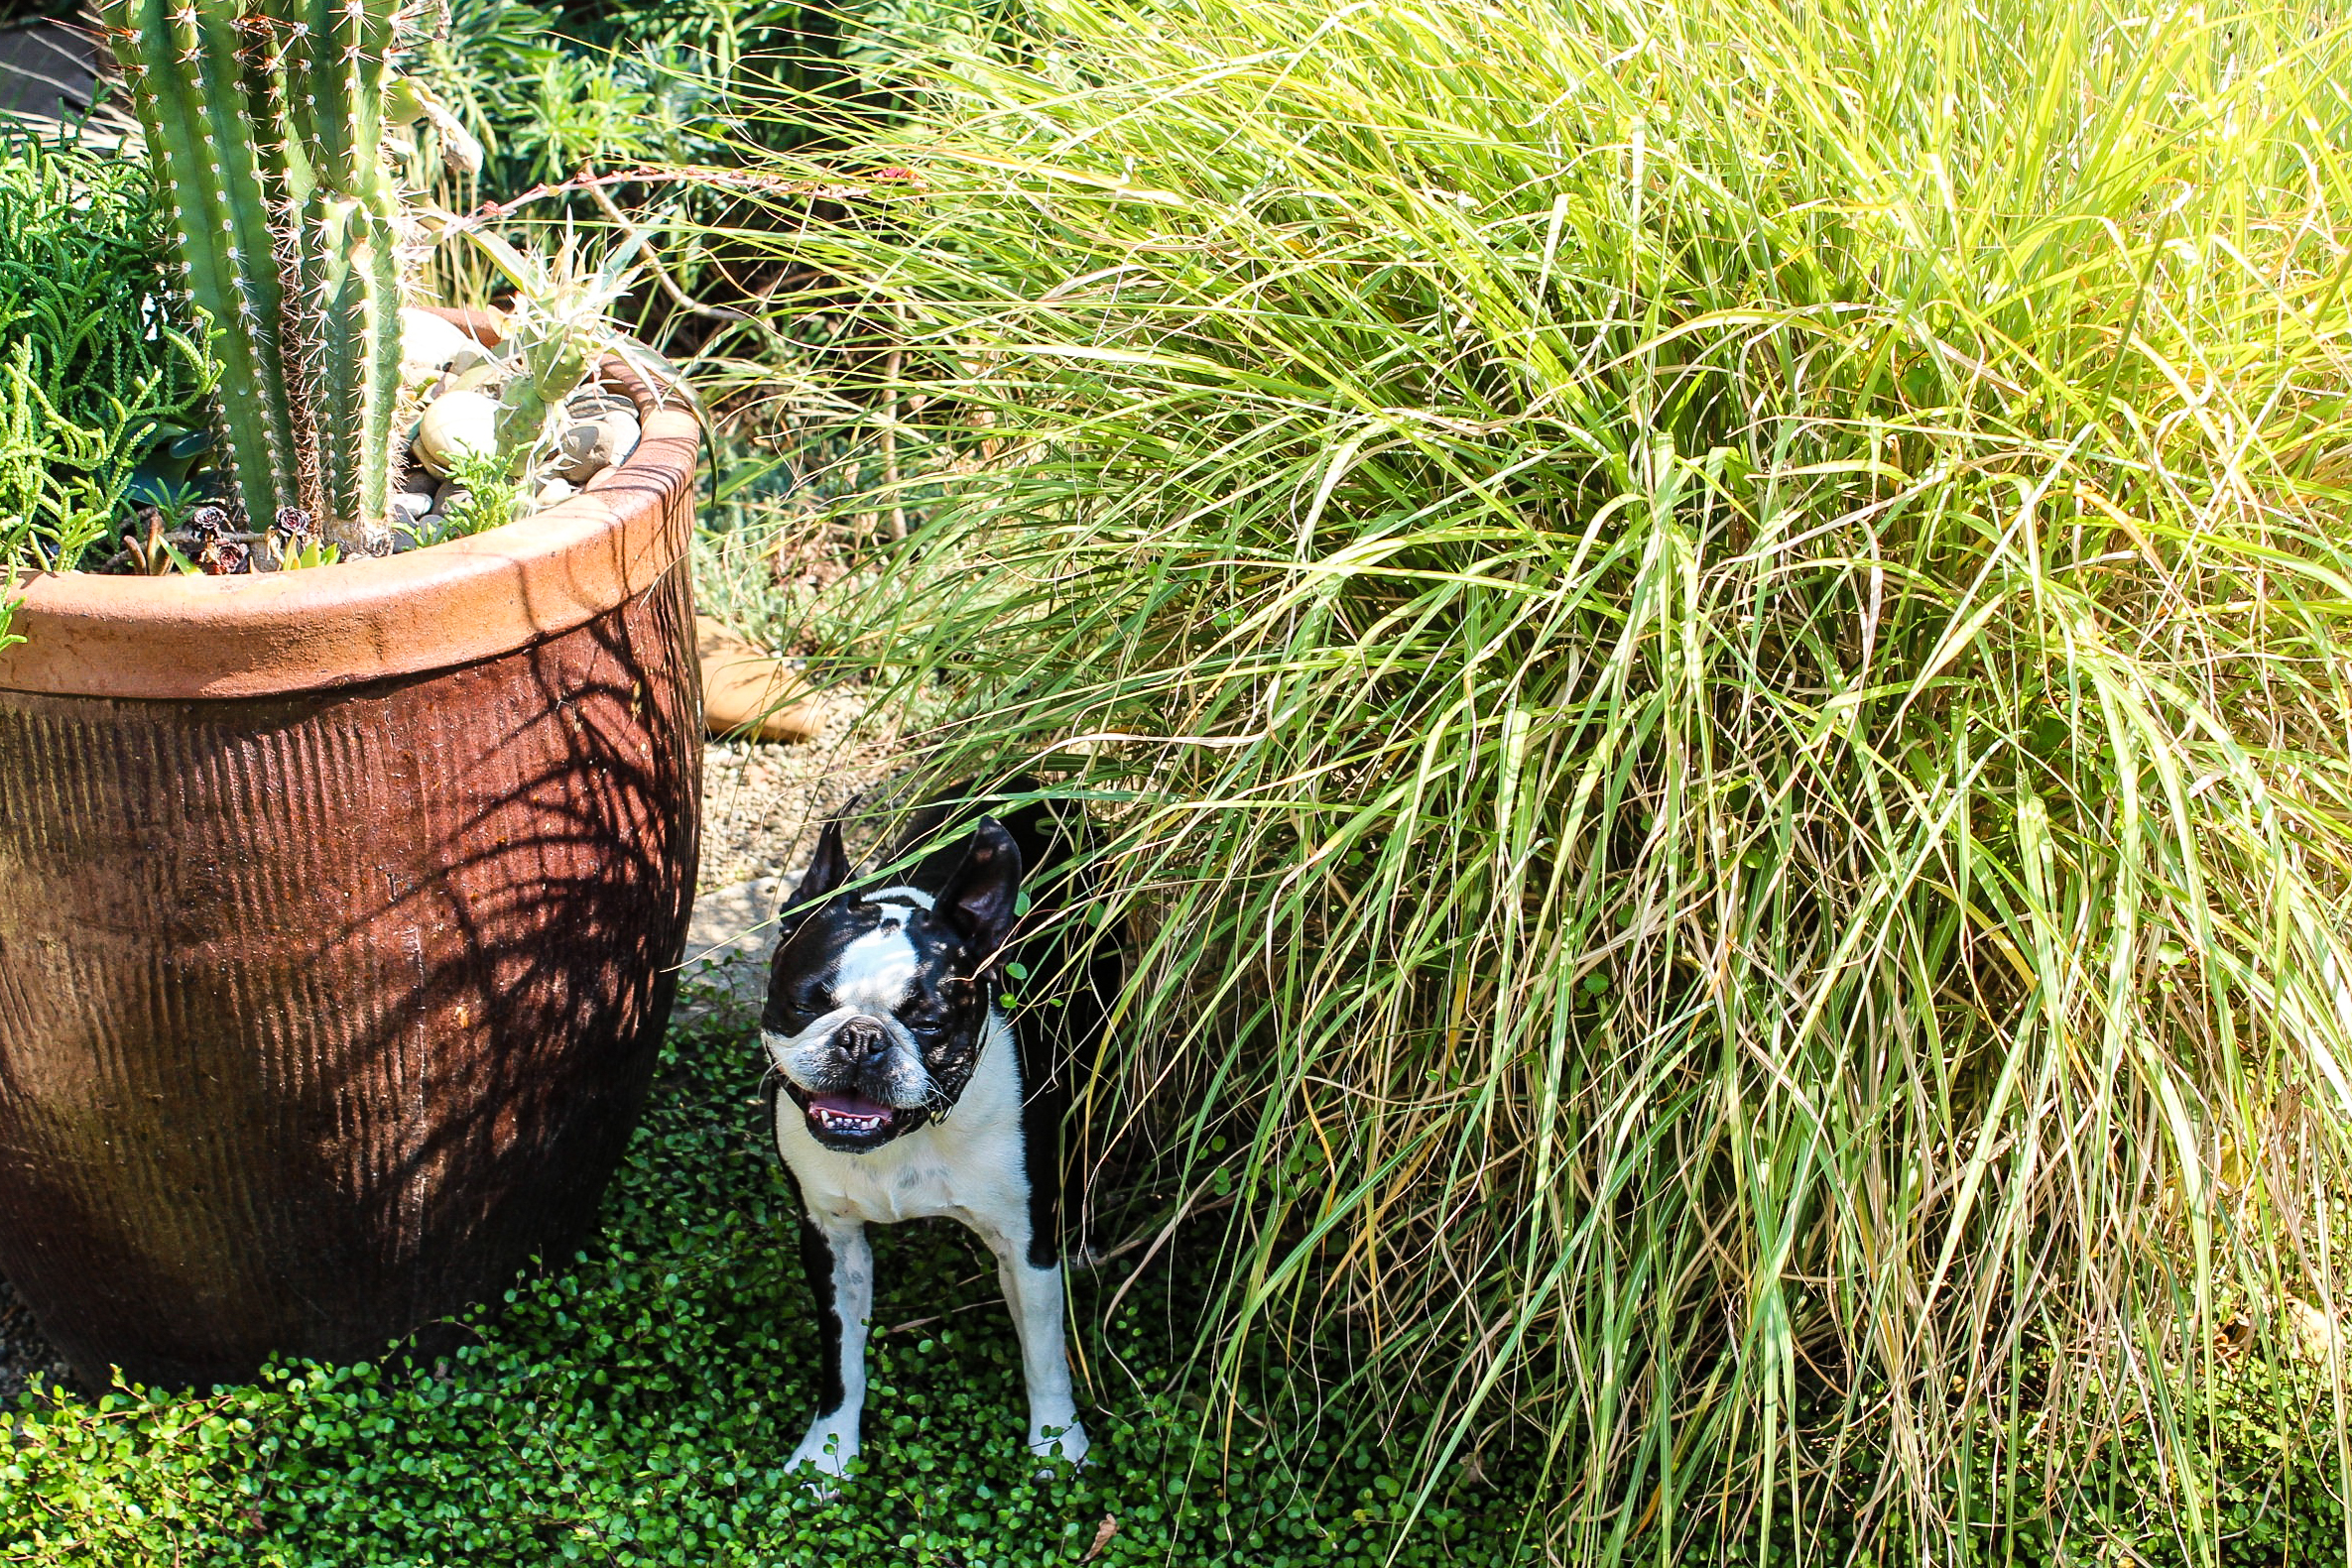 Rosie gave me a tour of her favorite shady spots in the garden.